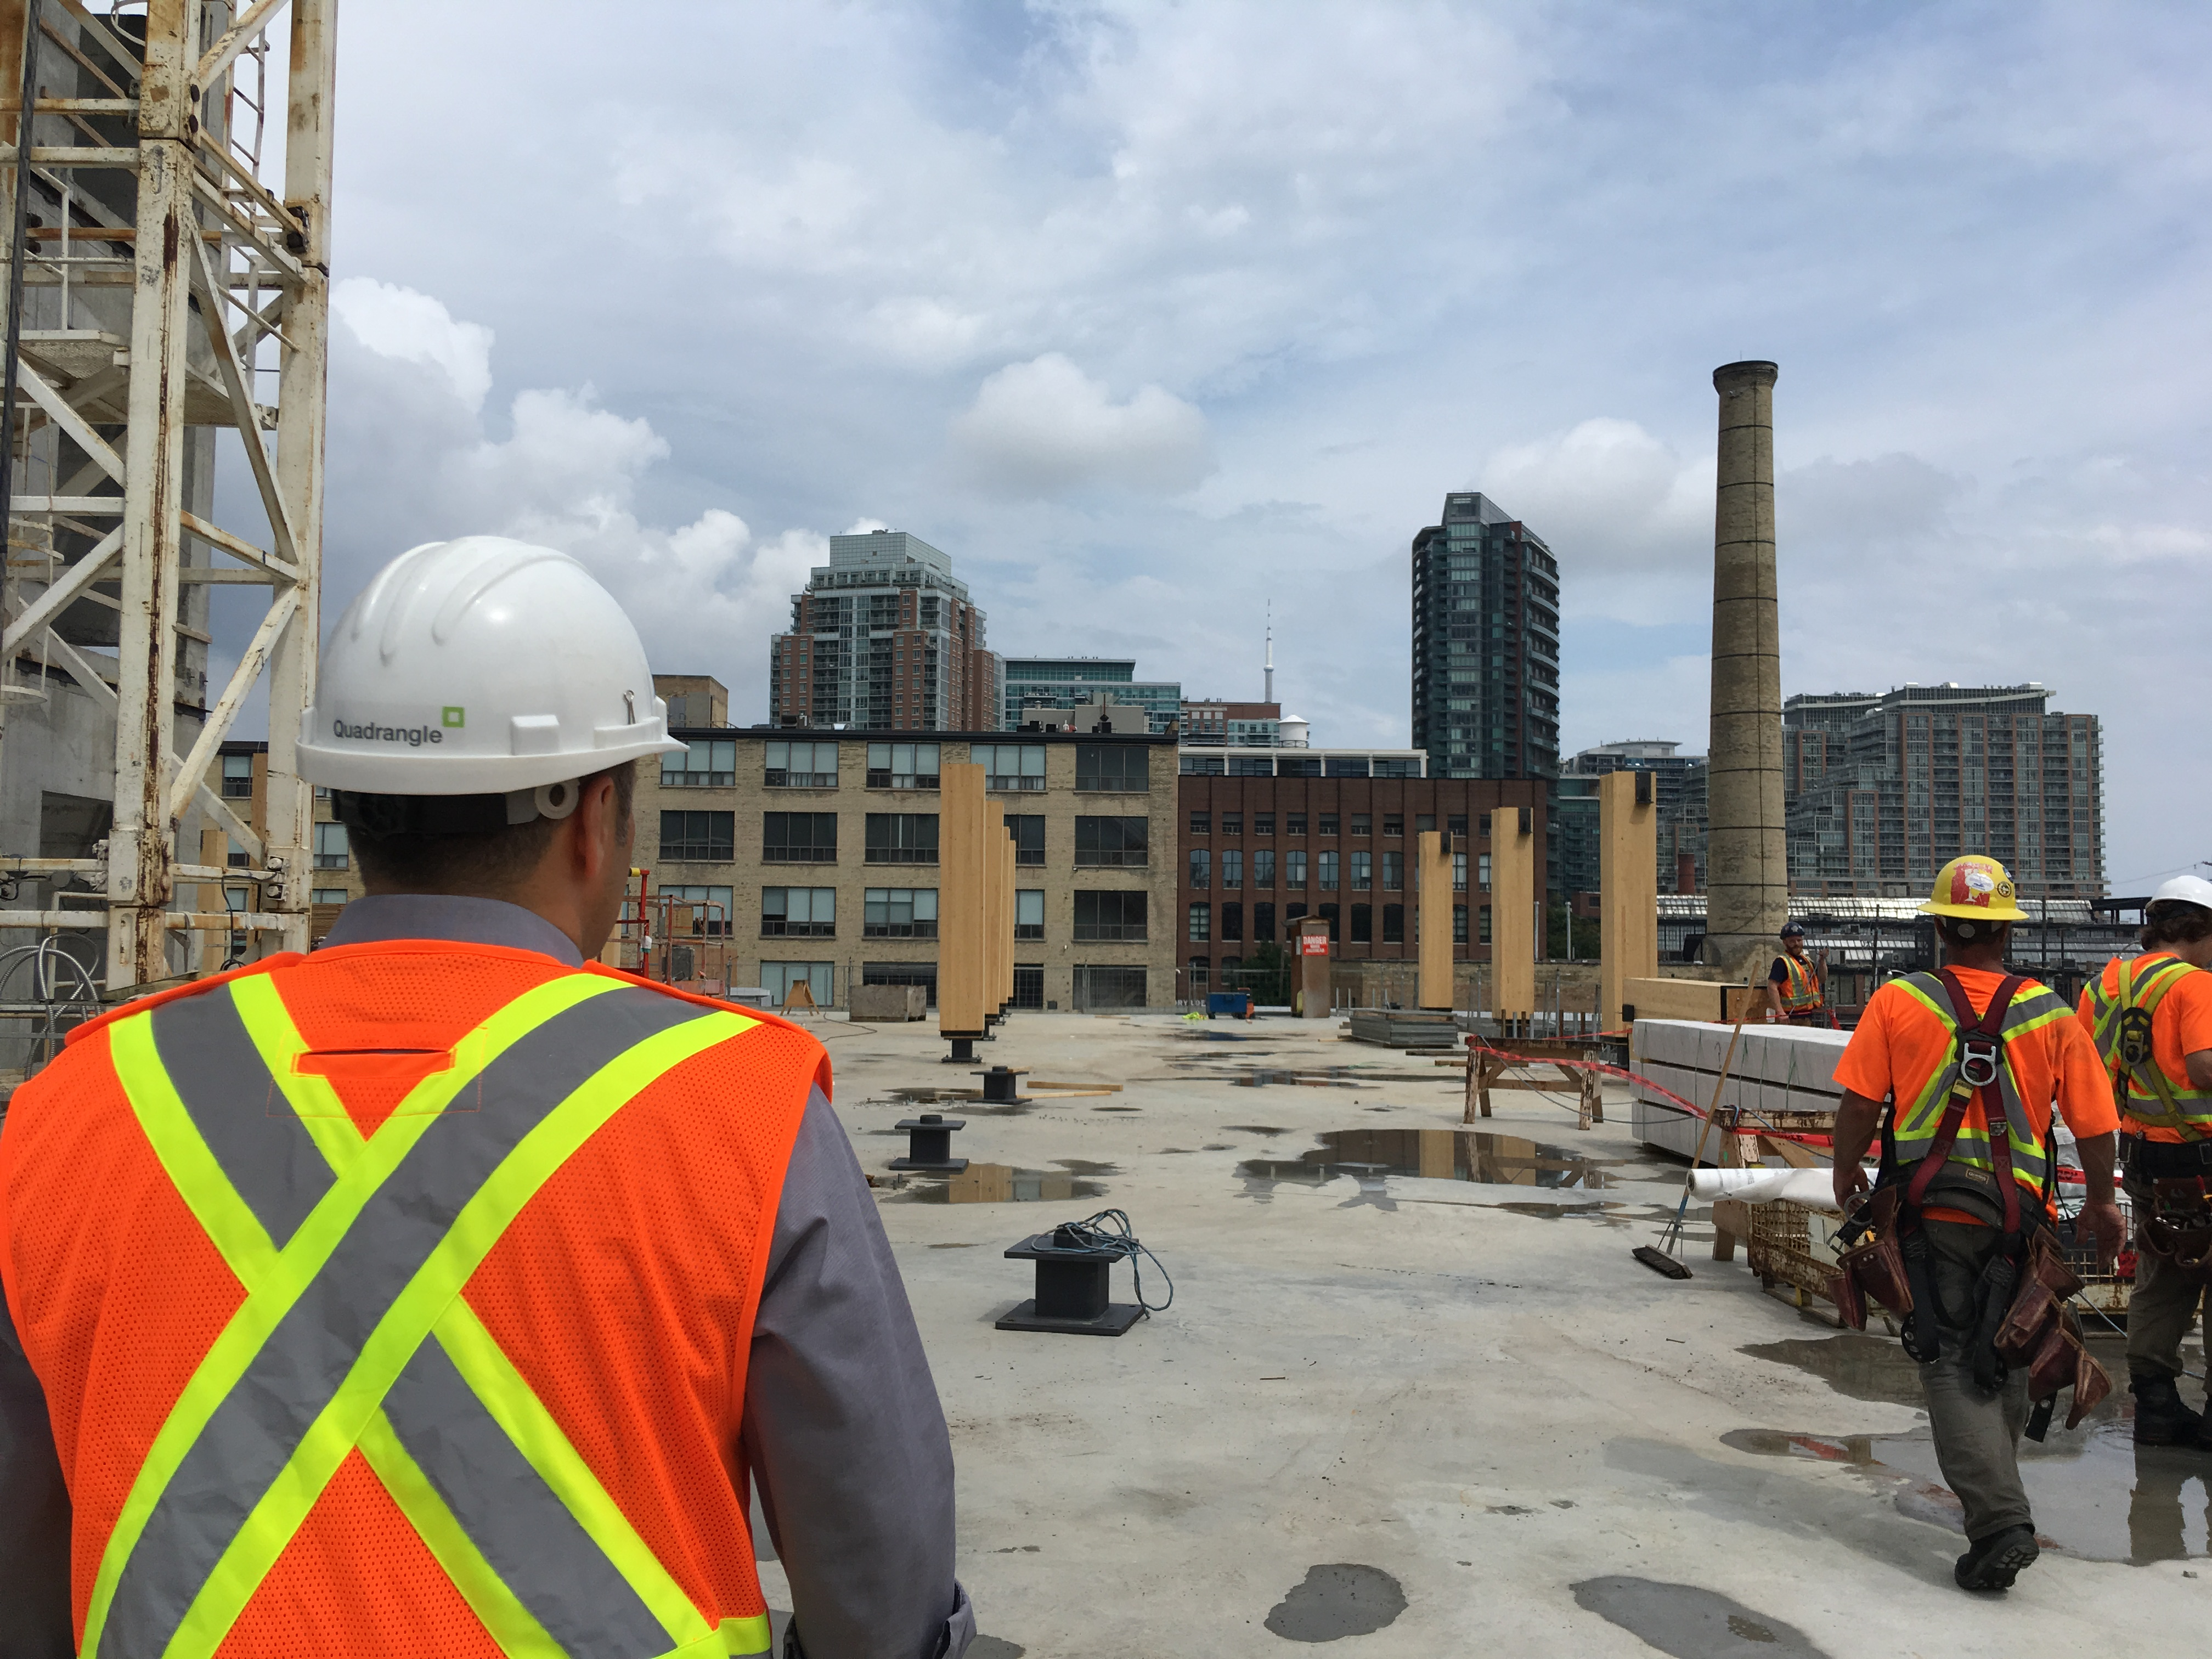 Richard Witt seen from behind wearing safety vest and Quadrangle branded hard hat in teh foreground on site at 80 Atlantic looking at upright glulam columns and Liberty Village condos and heritage smokestack in the distance